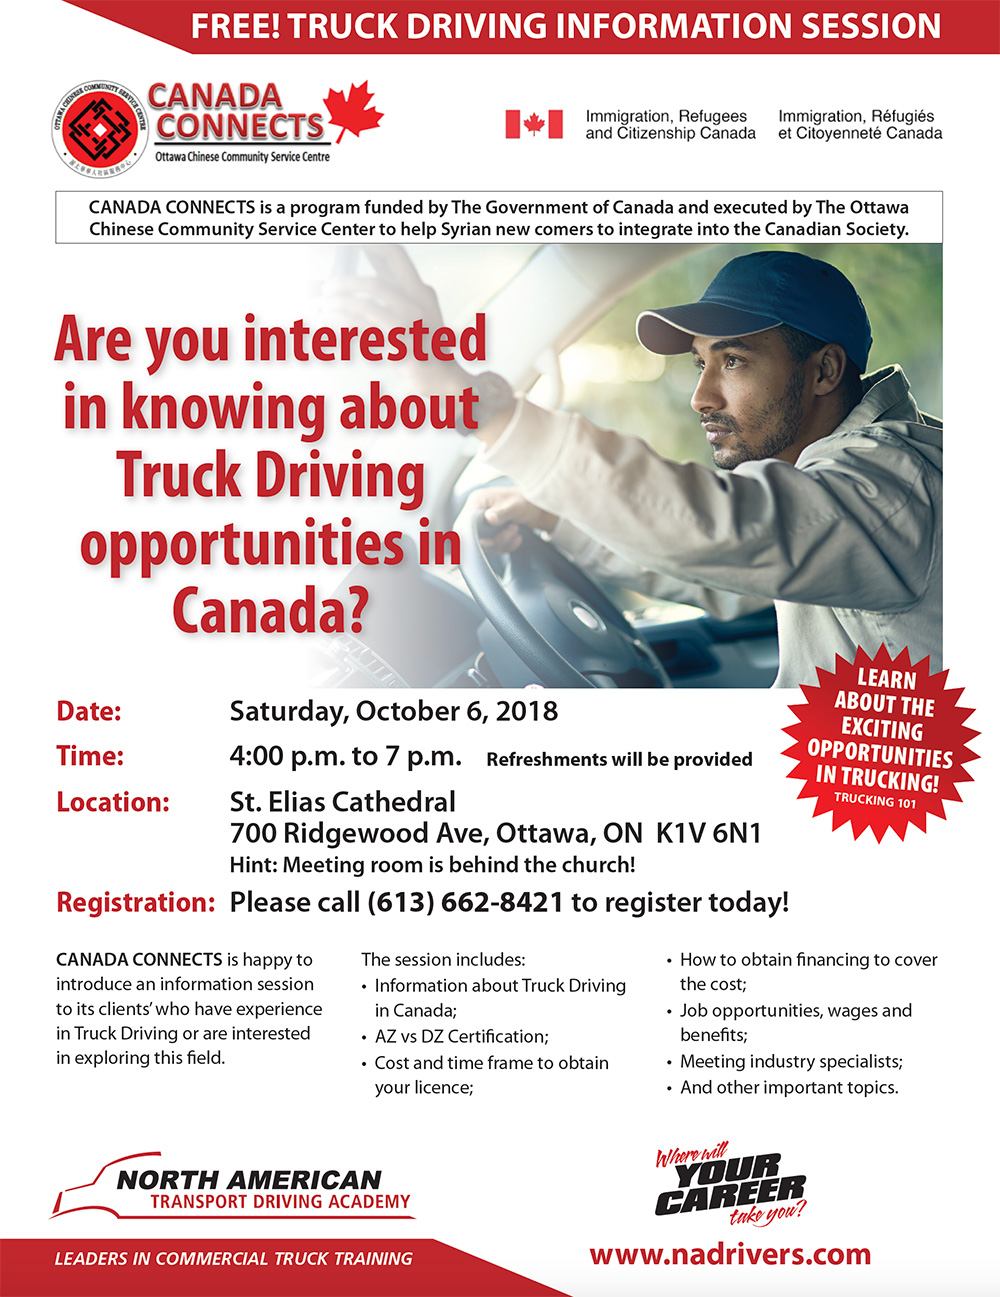 Free! Truck Driving Information Session